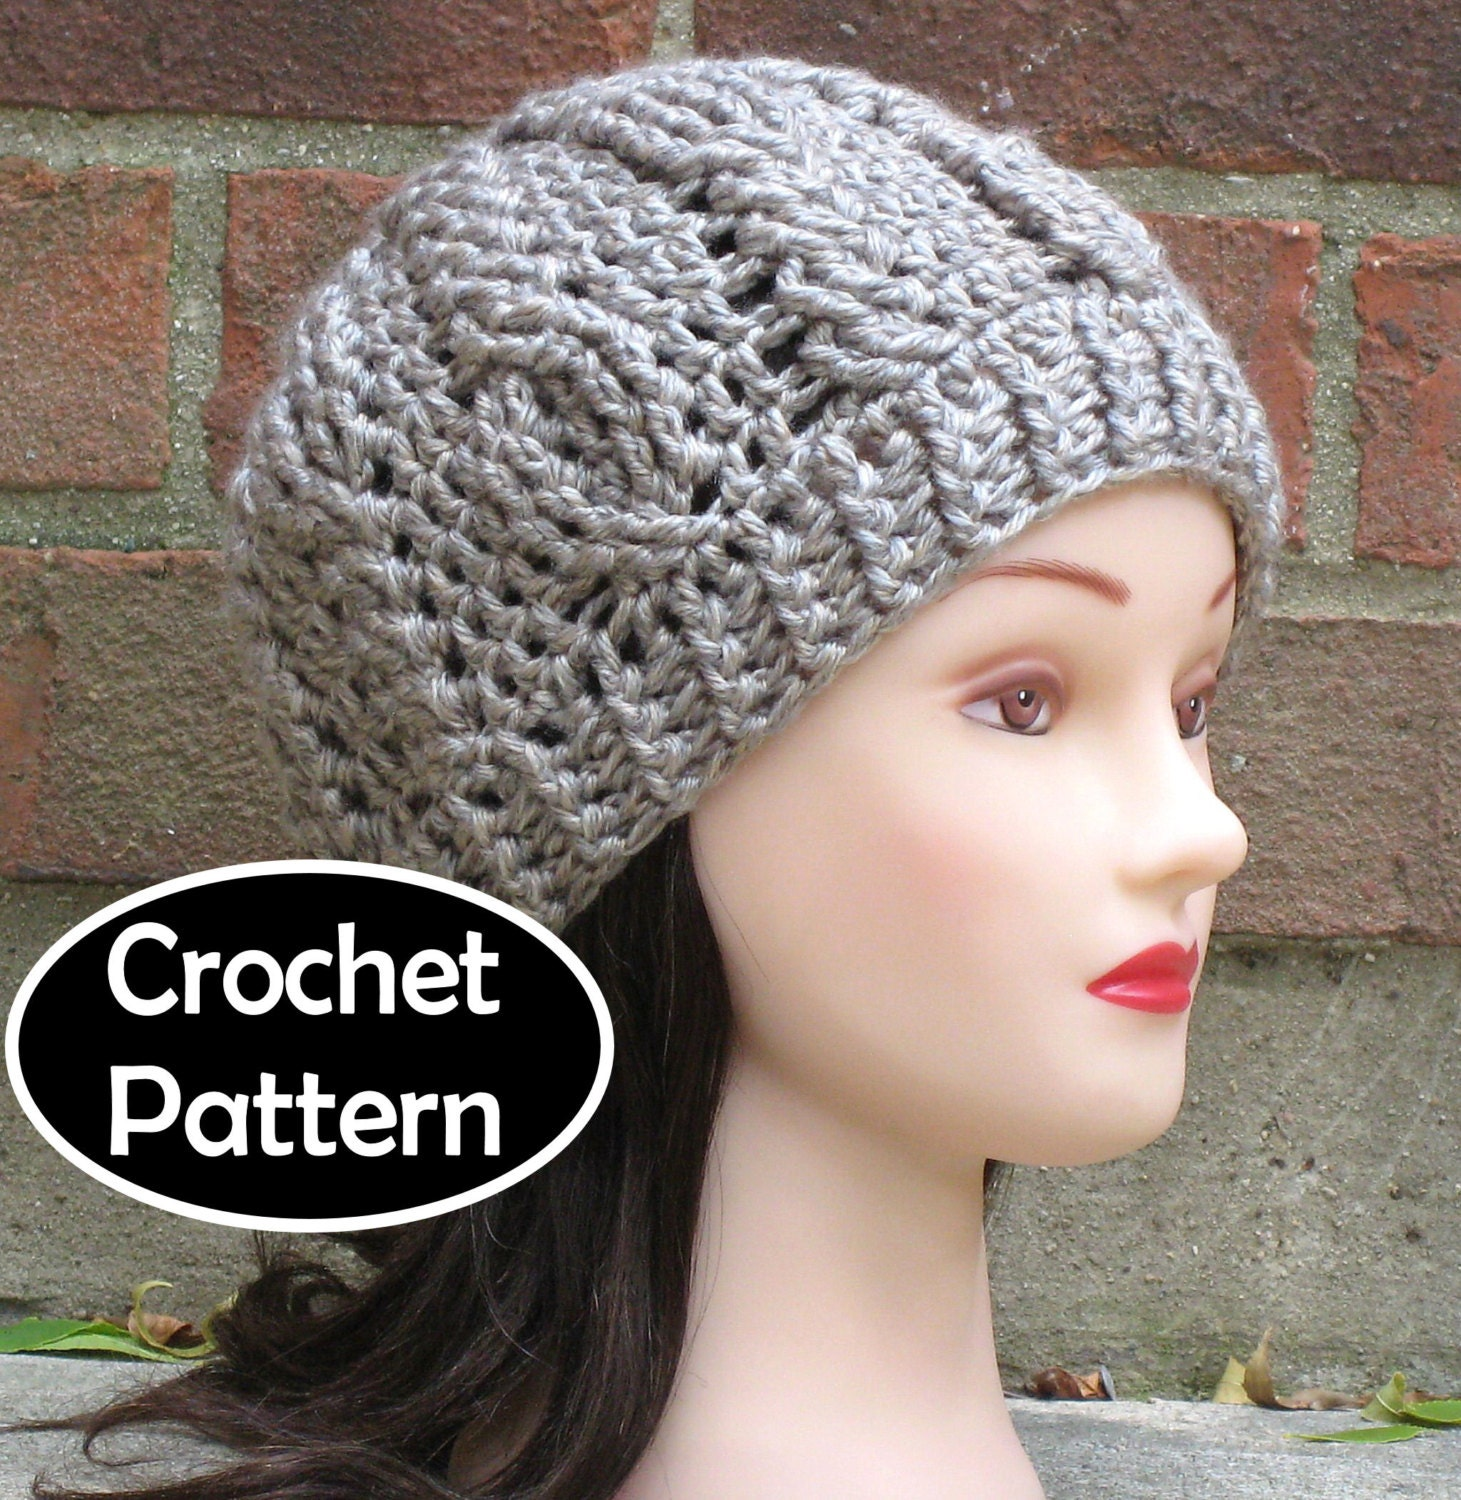 Crochet Hat Pattern Download : CROCHET HAT PATTERN Instant Download Briony Cabled Beanie